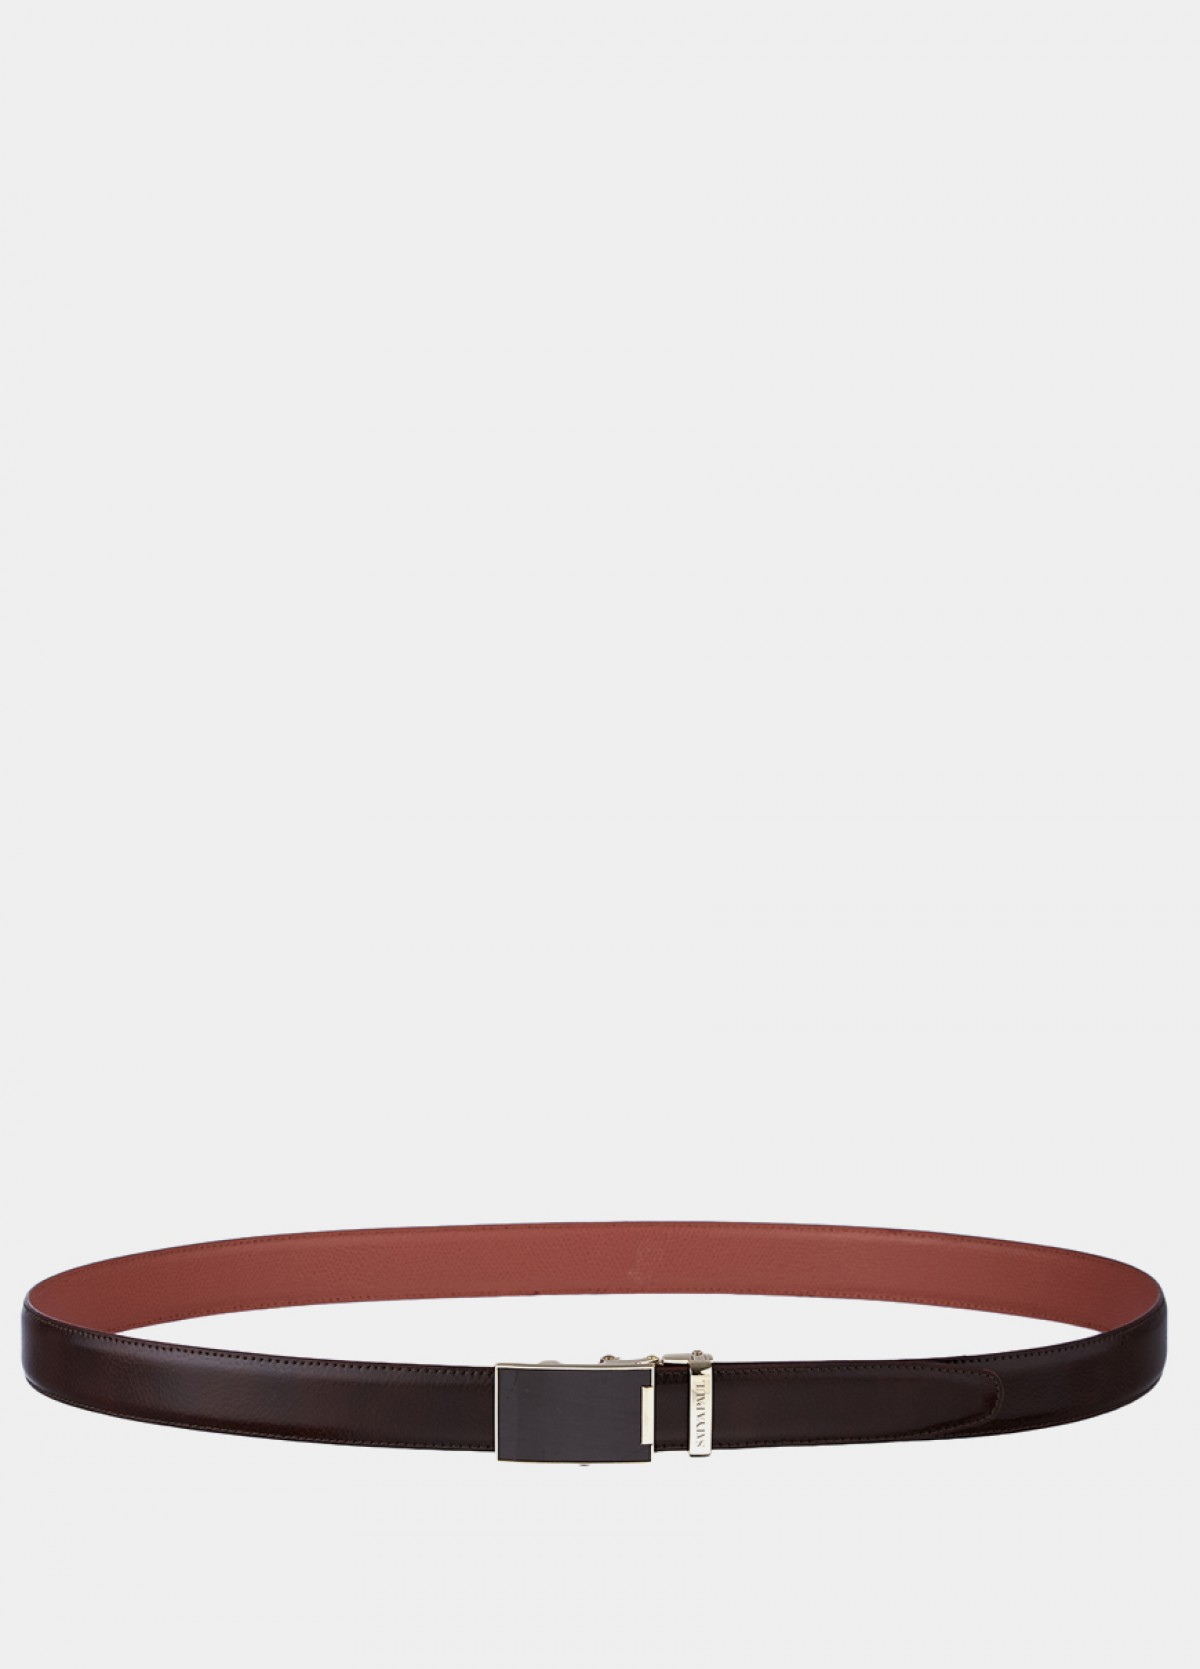 The Brown Leather Belt